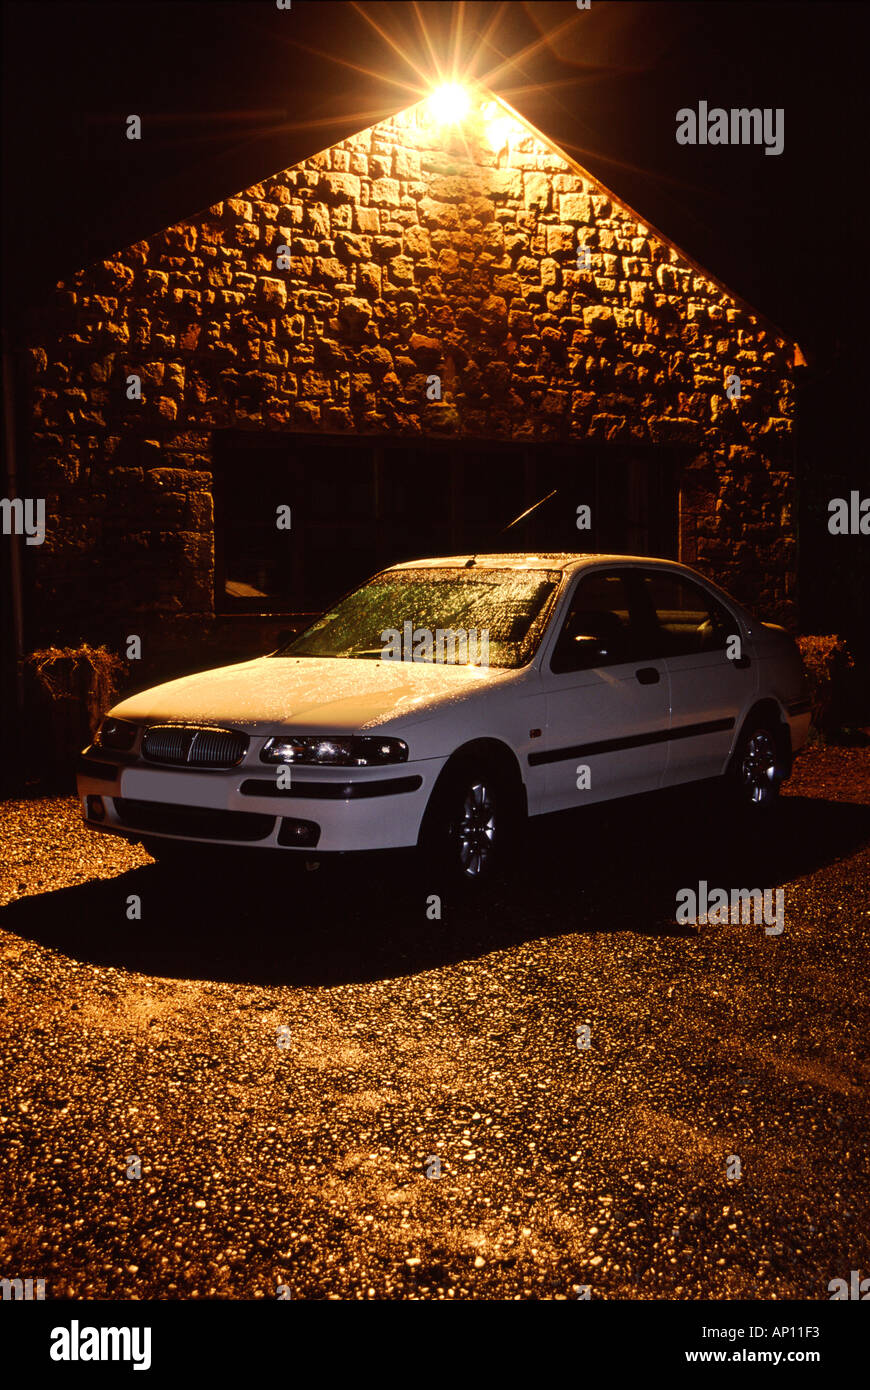 Car on a driveway at night lit by a security light stock photo car on a driveway at night lit by a security light aloadofball Gallery